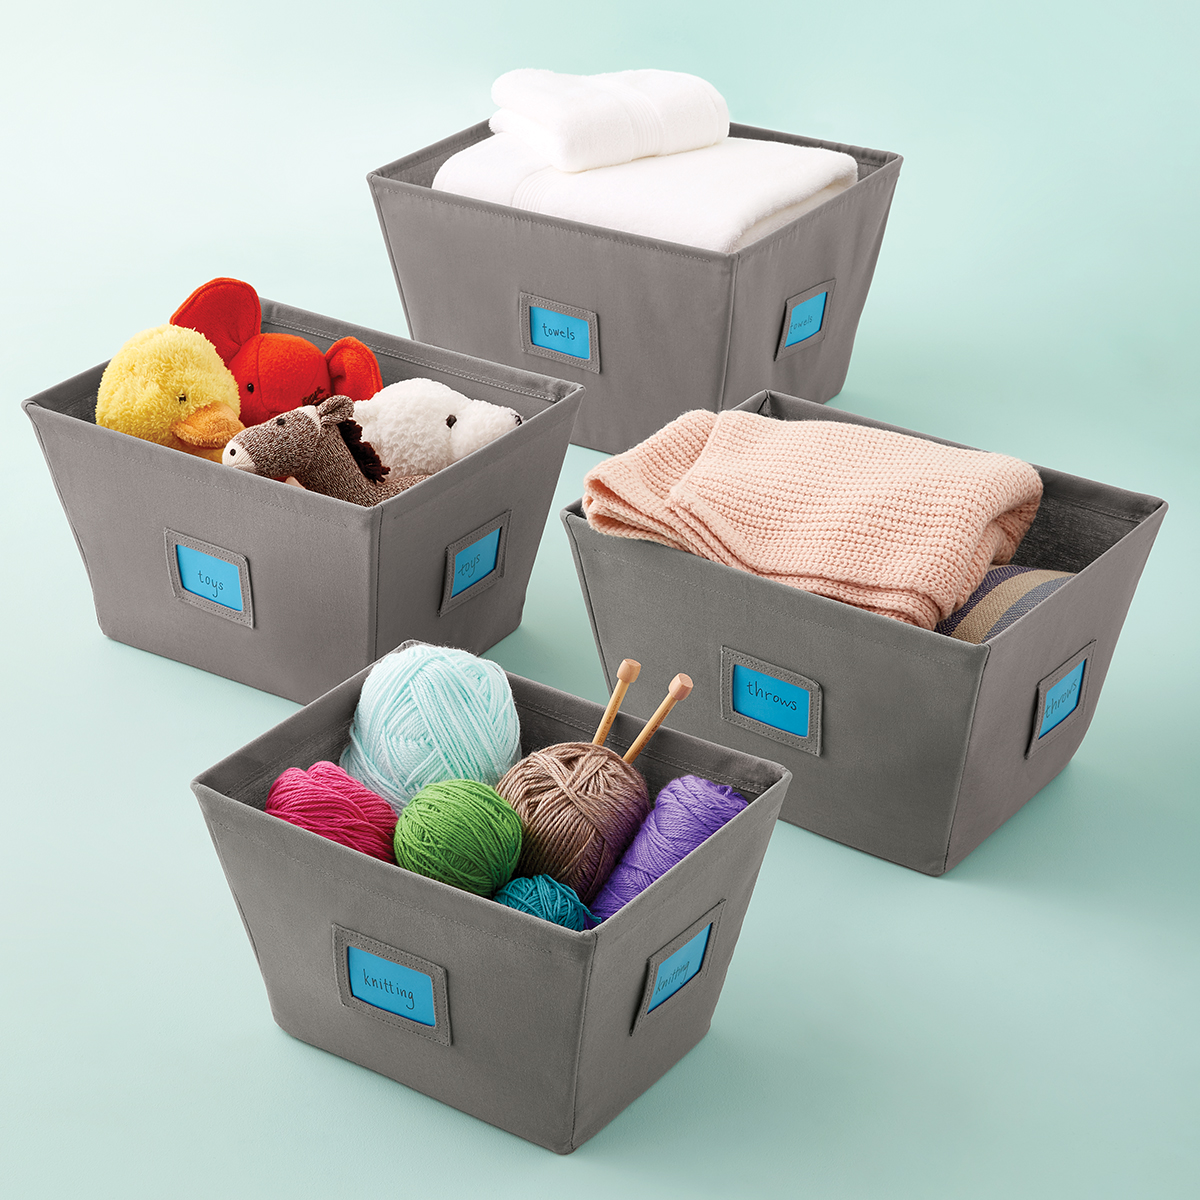 Grey Open Canvas Storage Bins with Labels ... & Grey Open Canvas Storage Bins with Labels | The Container Store